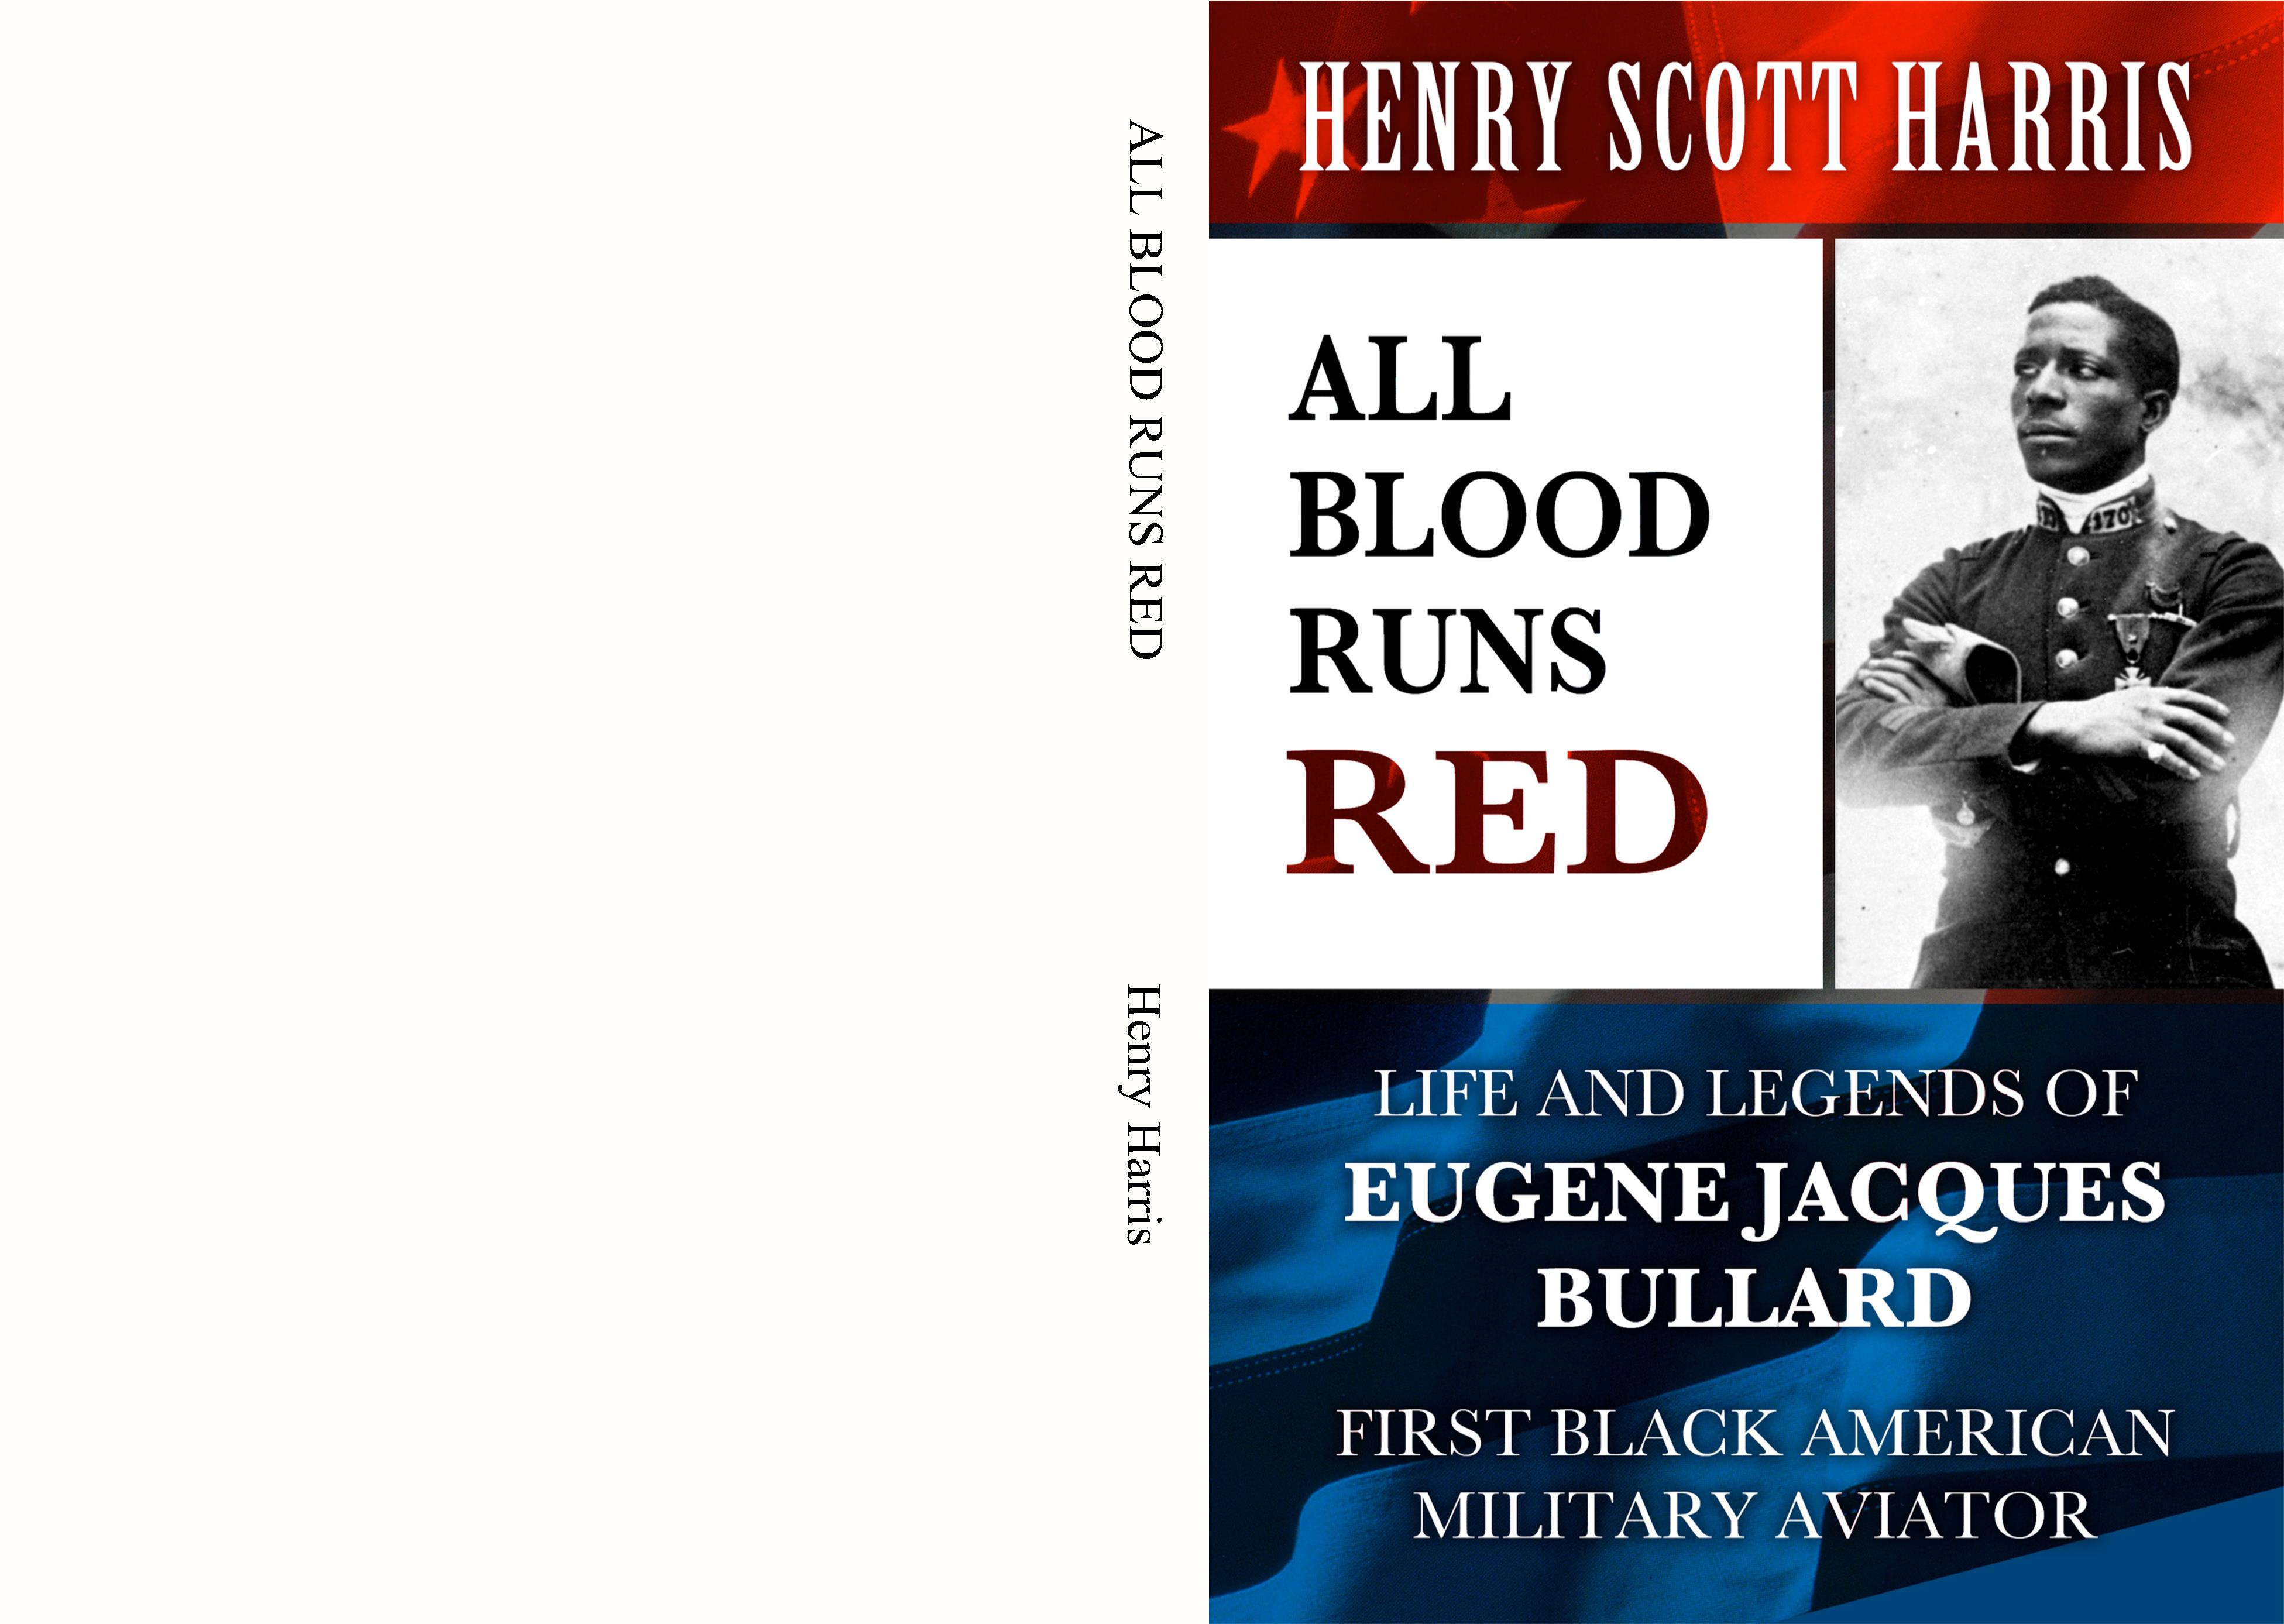 ALL BLOOD RUNS RED cover image